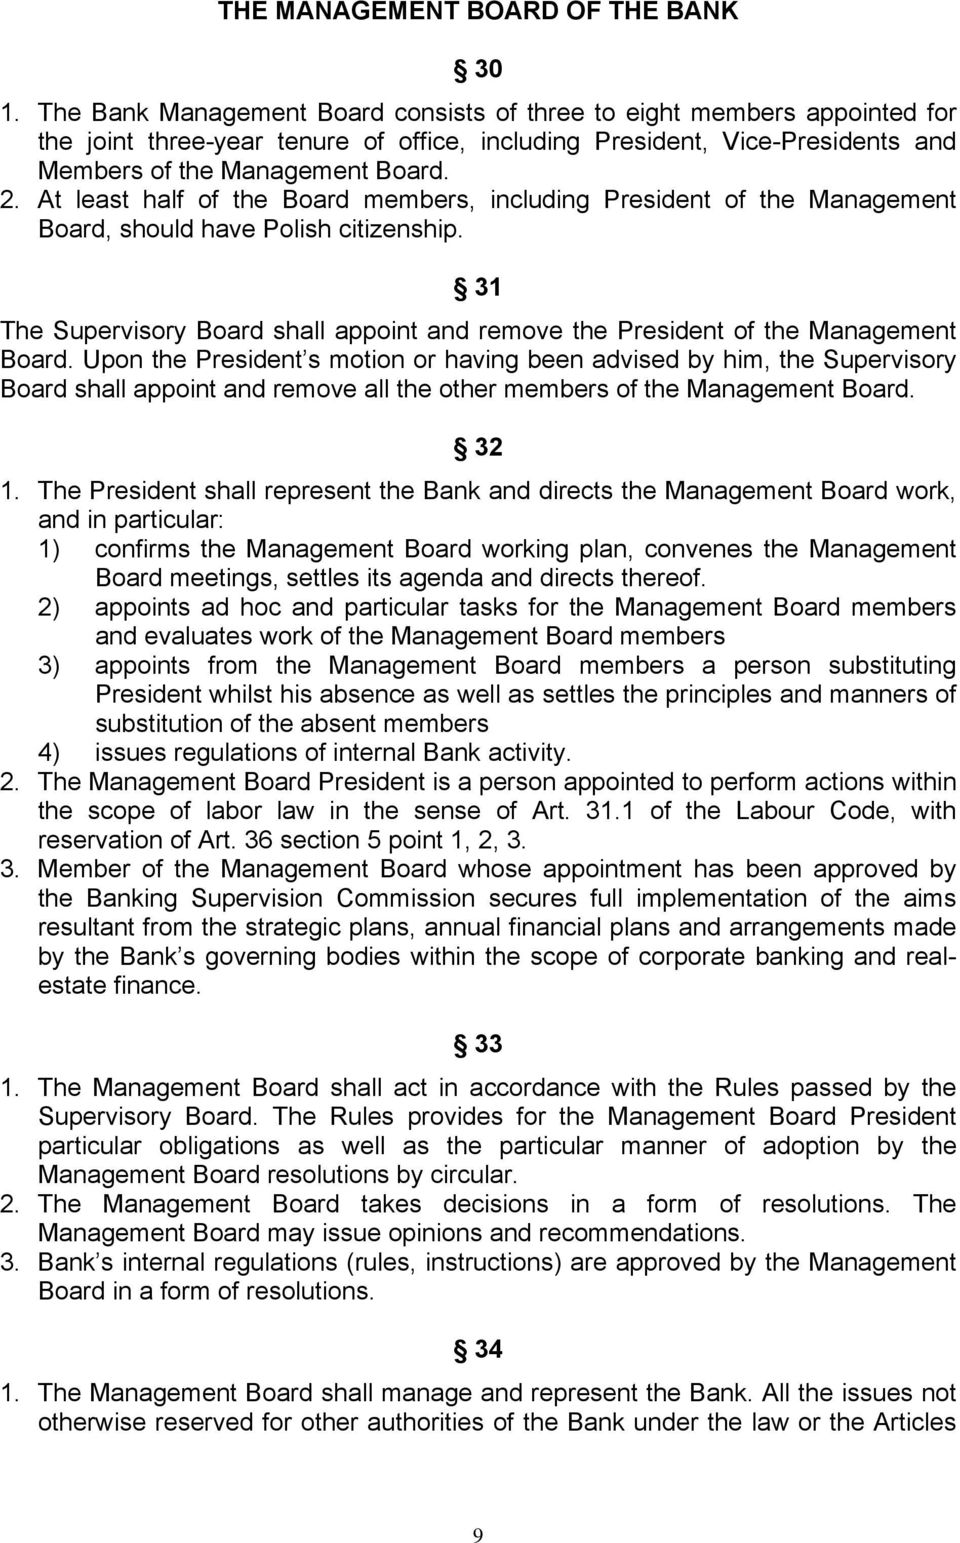 At least half of the Board members, including President of the Management Board, should have Polish citizenship.